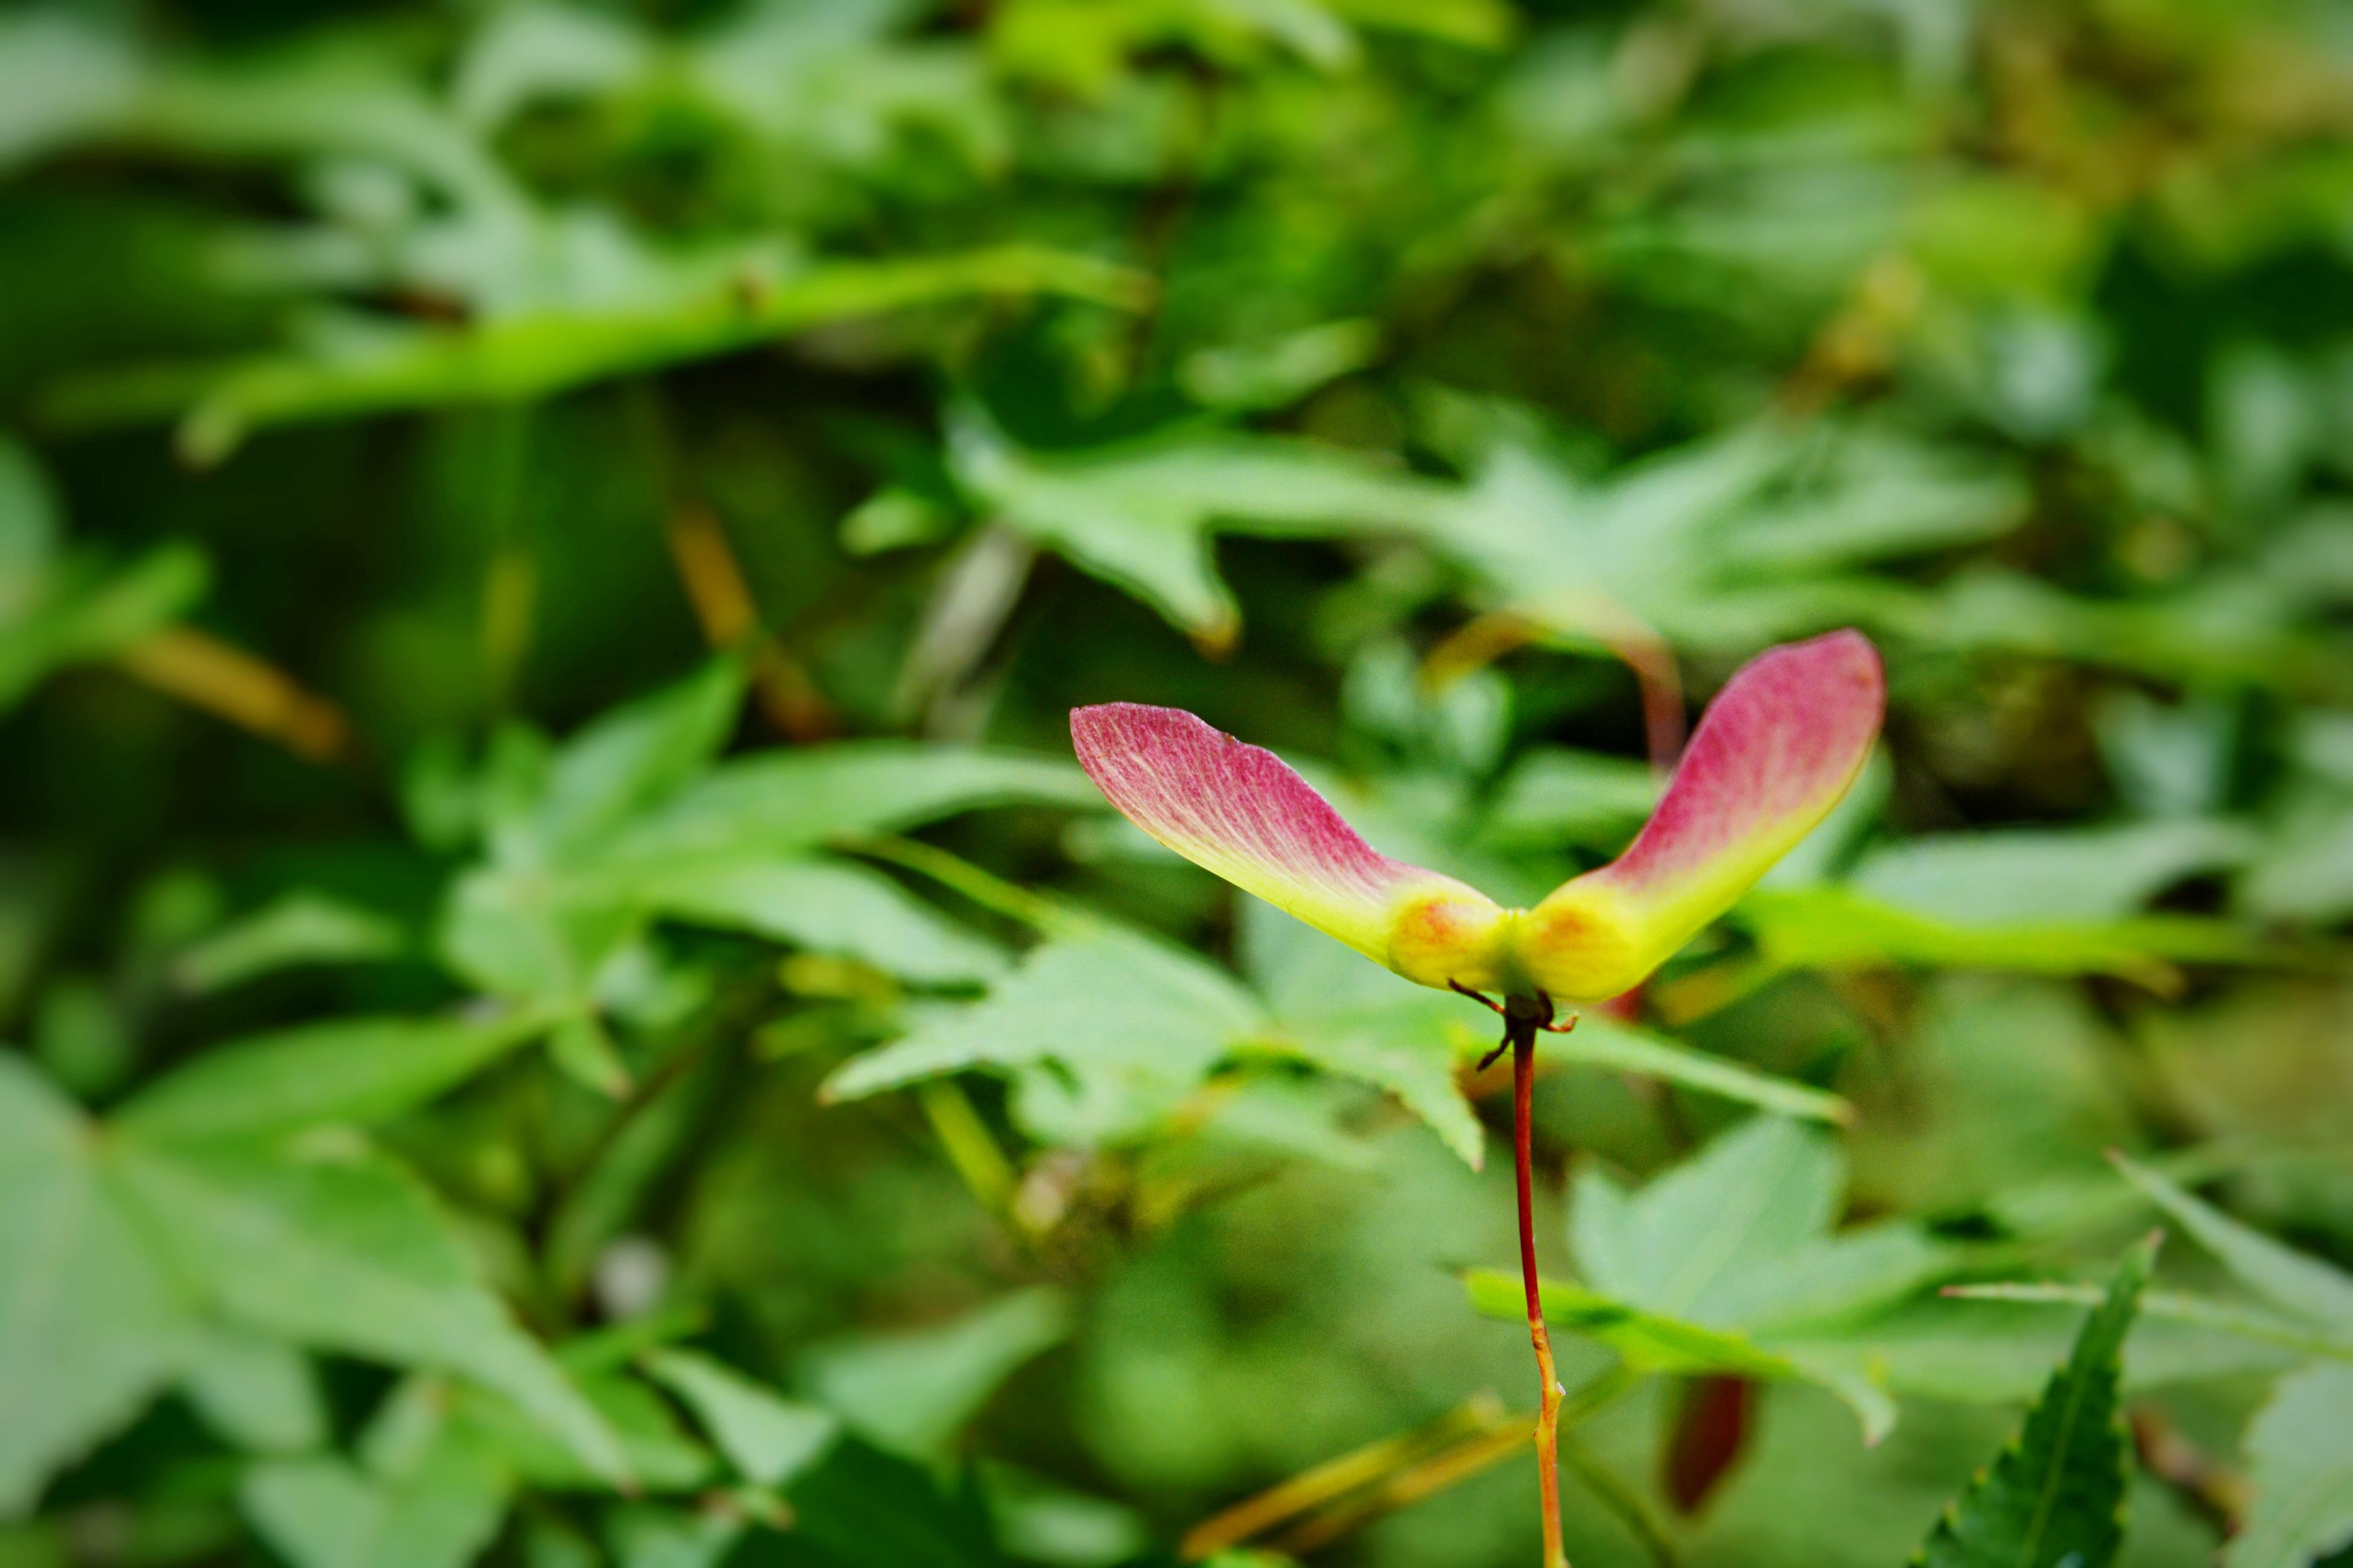 flower, growth, freshness, plant, focus on foreground, fragility, petal, beauty in nature, nature, stem, bud, close-up, green color, flower head, leaf, blooming, new life, selective focus, day, beginnings